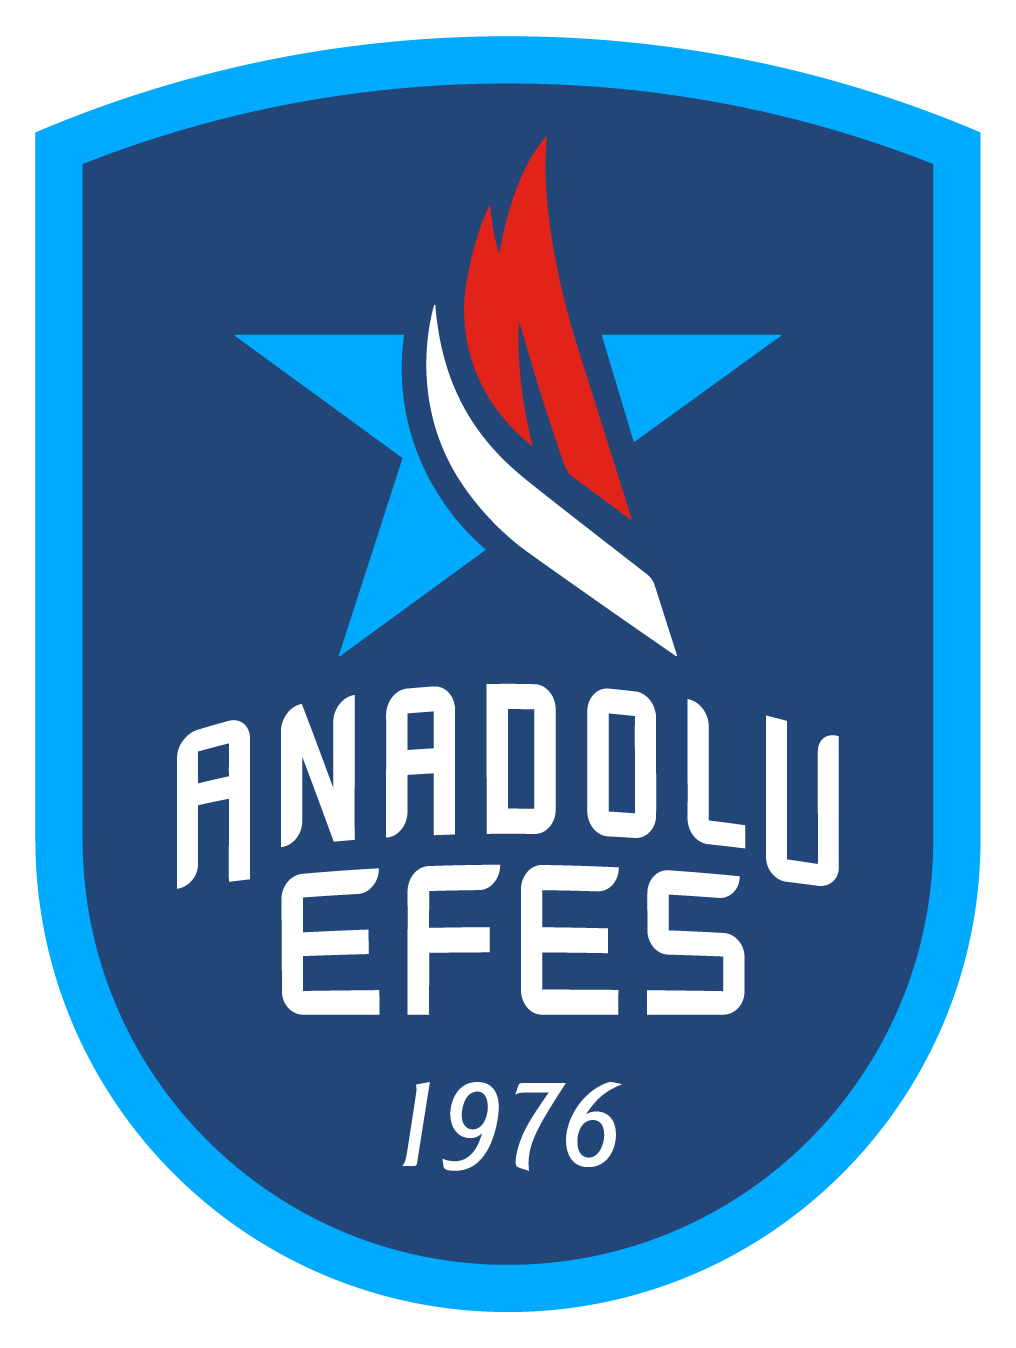 New Logo for Anadolu Efes Sports Club by Brown&co